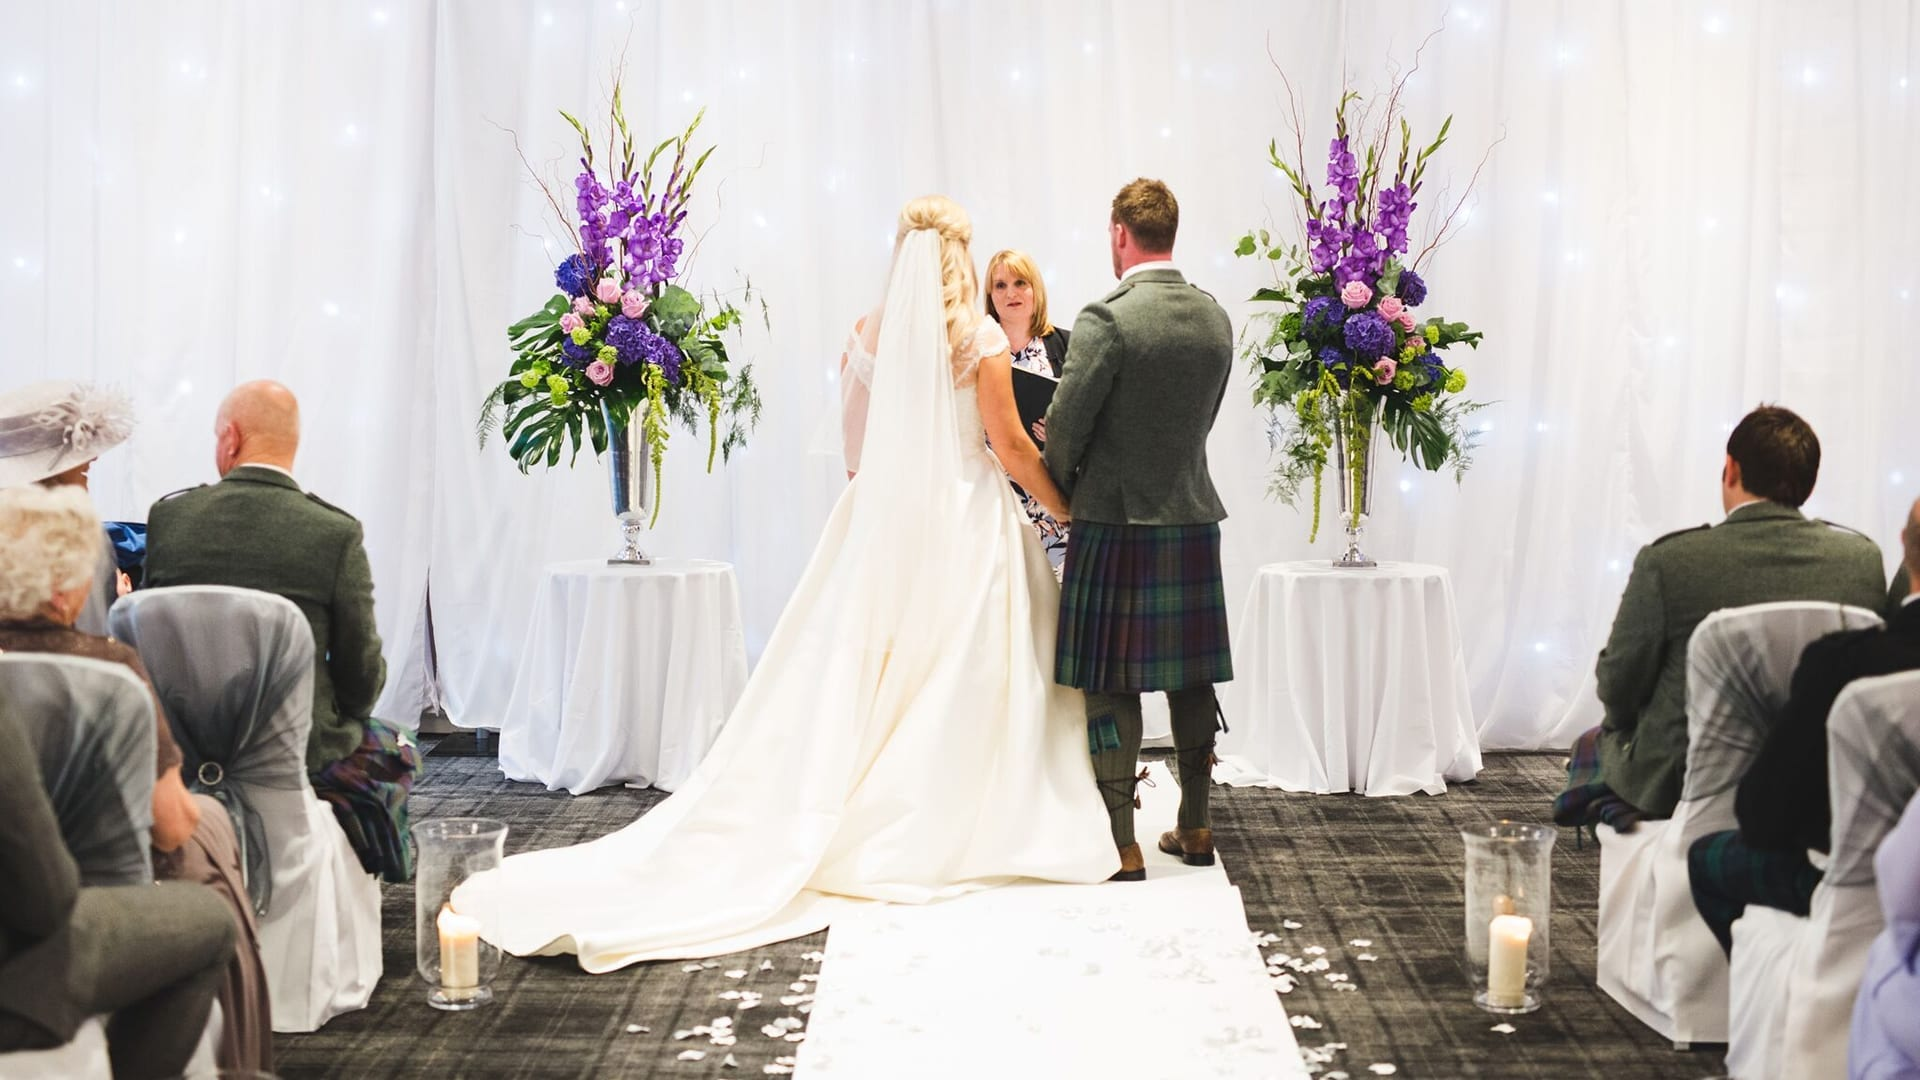 Wedding ceremony at Barony Castle